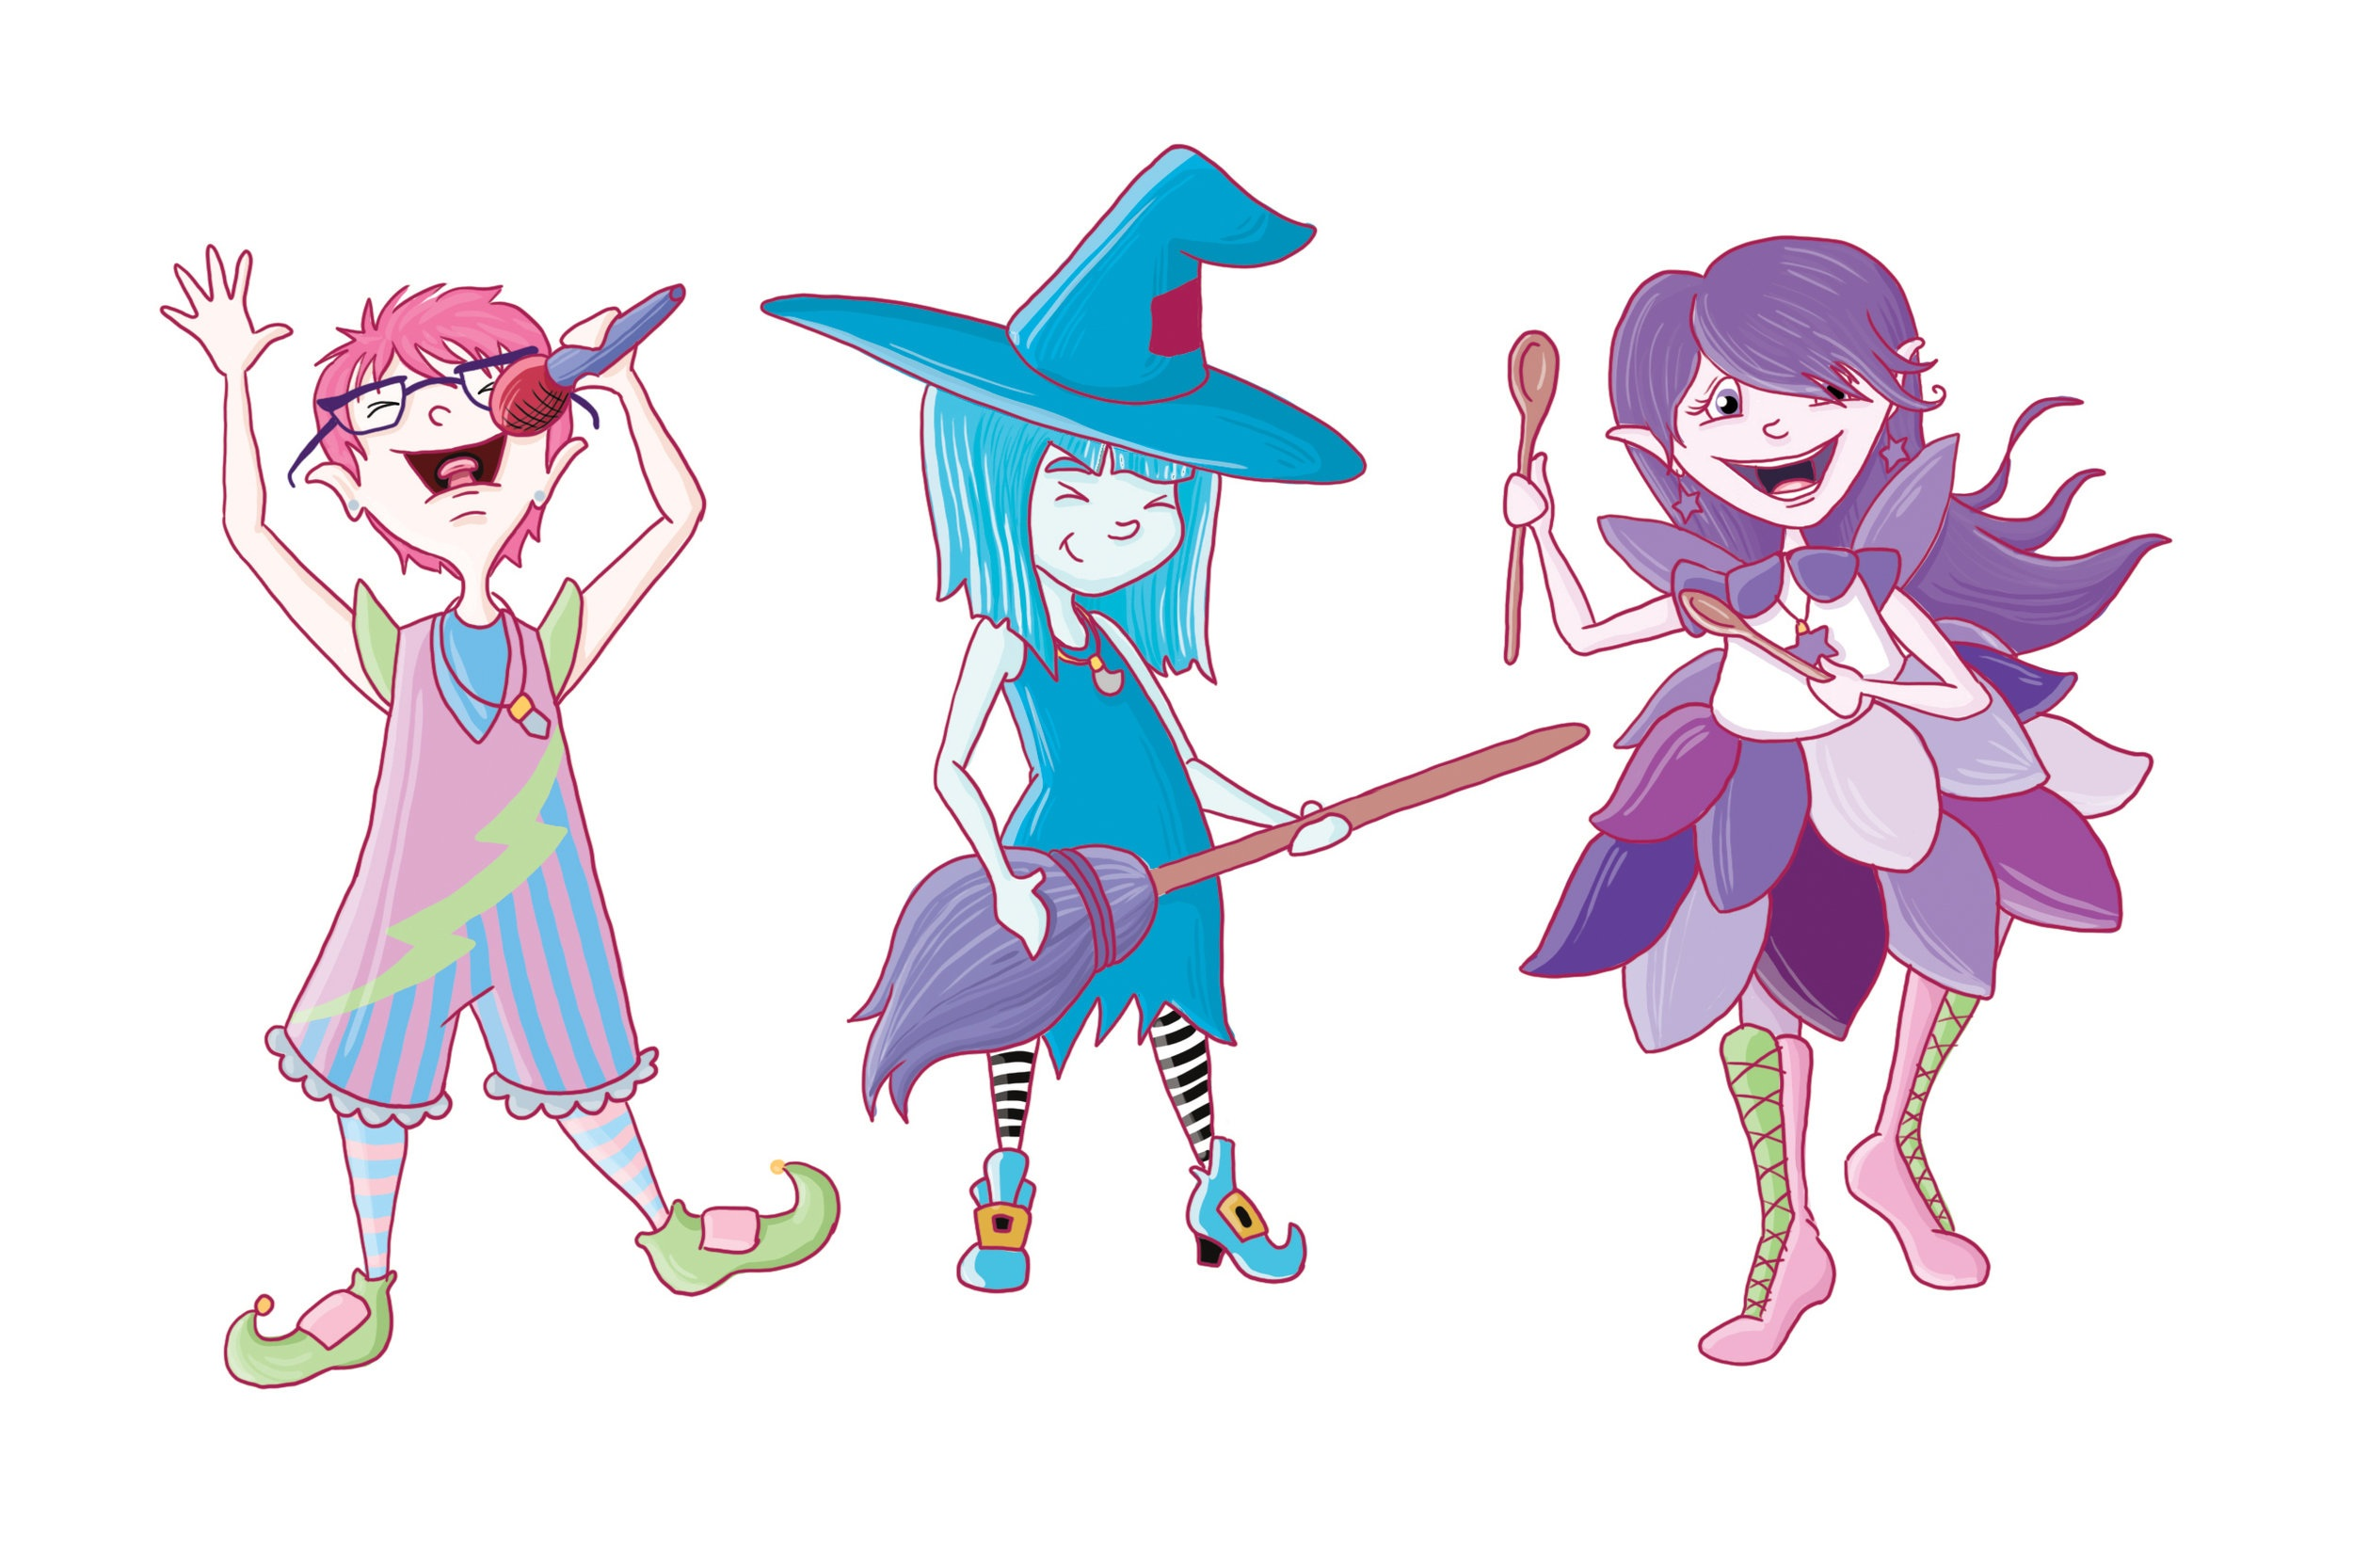 Meet three magical girls - who have the gift of music and want to share it with everyone in the town of Silencio.